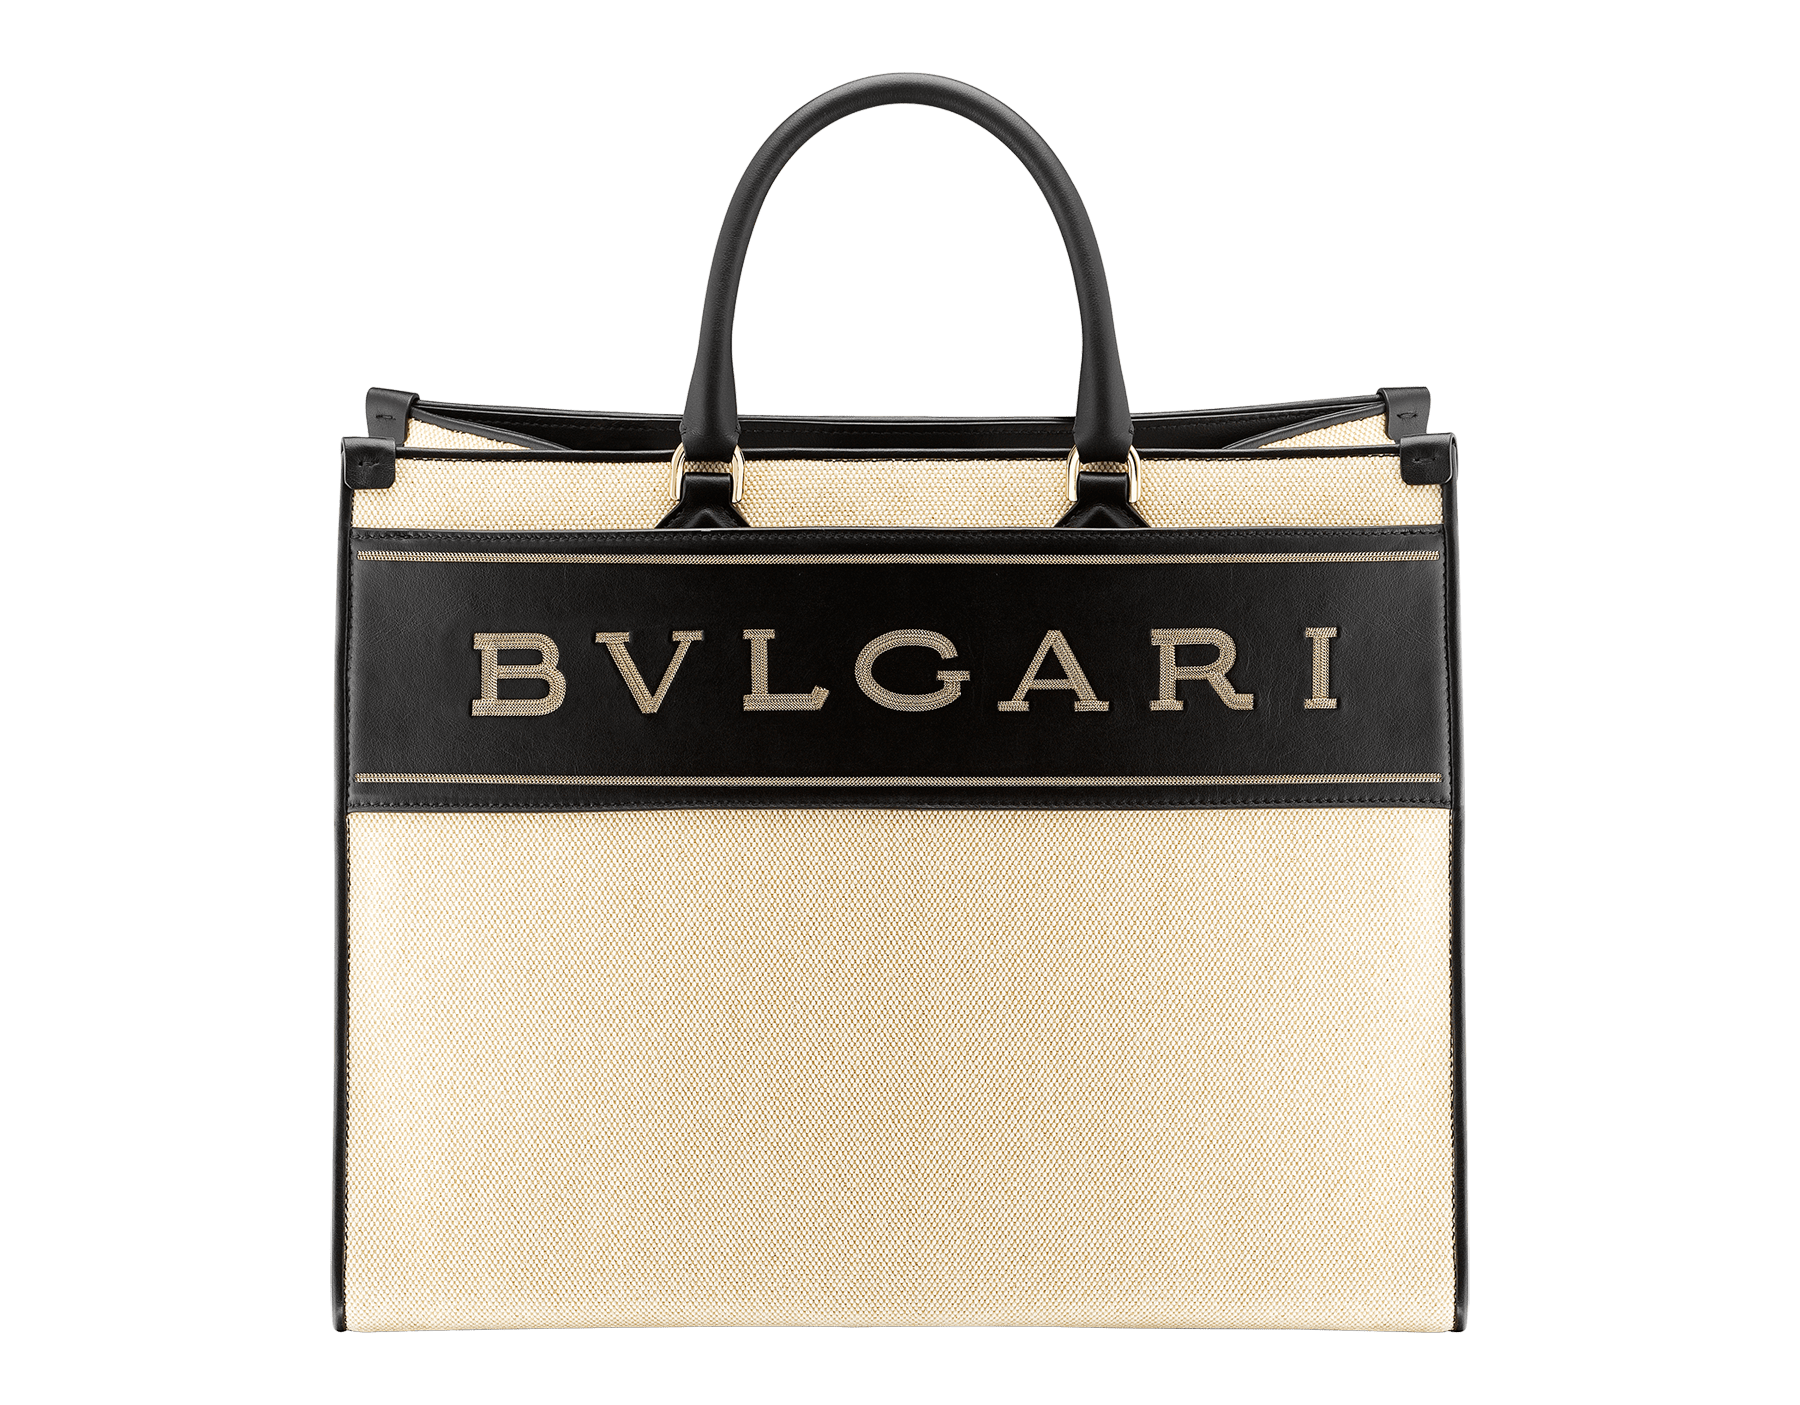 """""""Bvlgari Logo"""" large tote bag in black calf leather, with black grosgrain inner lining. Bvlgari logo featuring dark ruthenium-plated brass chain inserts on the black calf leather. BVL-1160 image 1"""